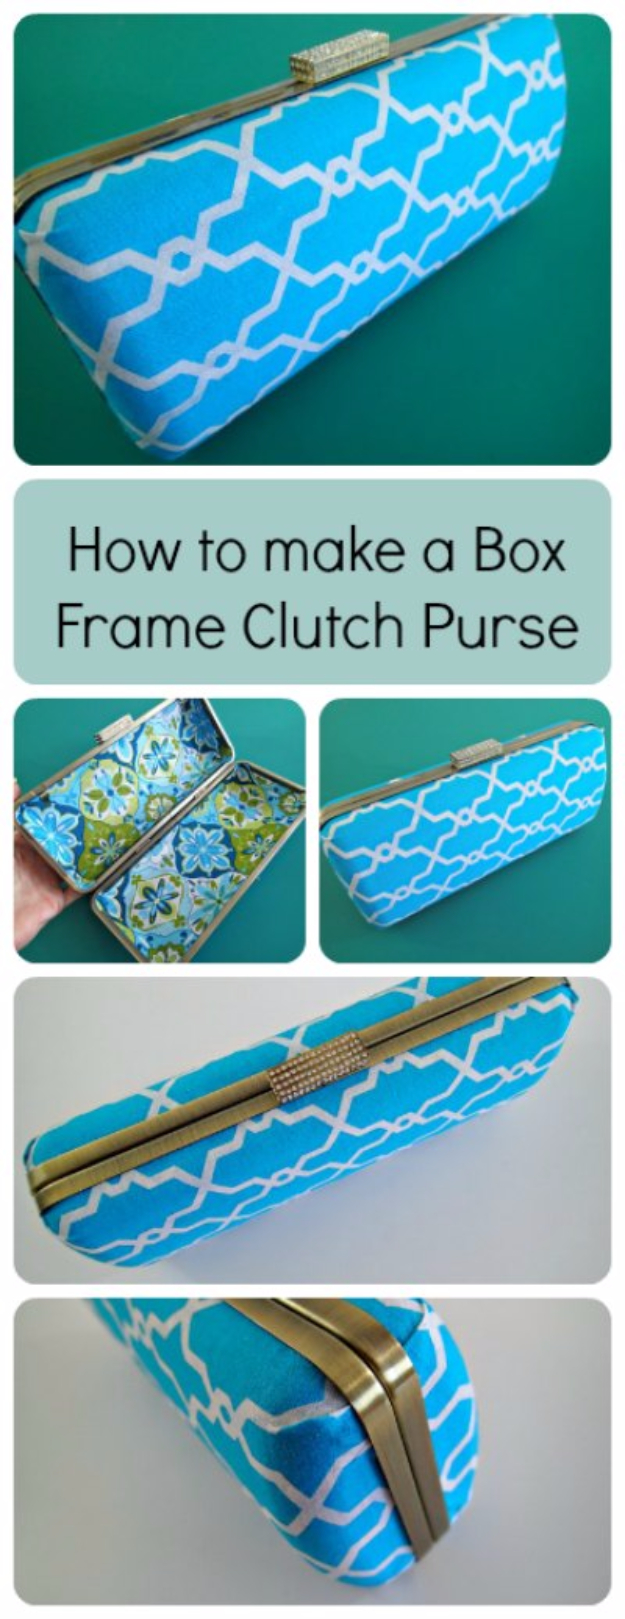 DIY Purses and Handbags - Box Frame Clutch Purse - Homemade Projects to Decorate and Make Purses - Add Paint, Glitter, Buttons and Bling To Your Hand Bags and Purse With These Easy Step by Step Tutorials - Boho, Modern, and Cool Fashion Ideas for Women and Teens #purses #diyclothes #handbags